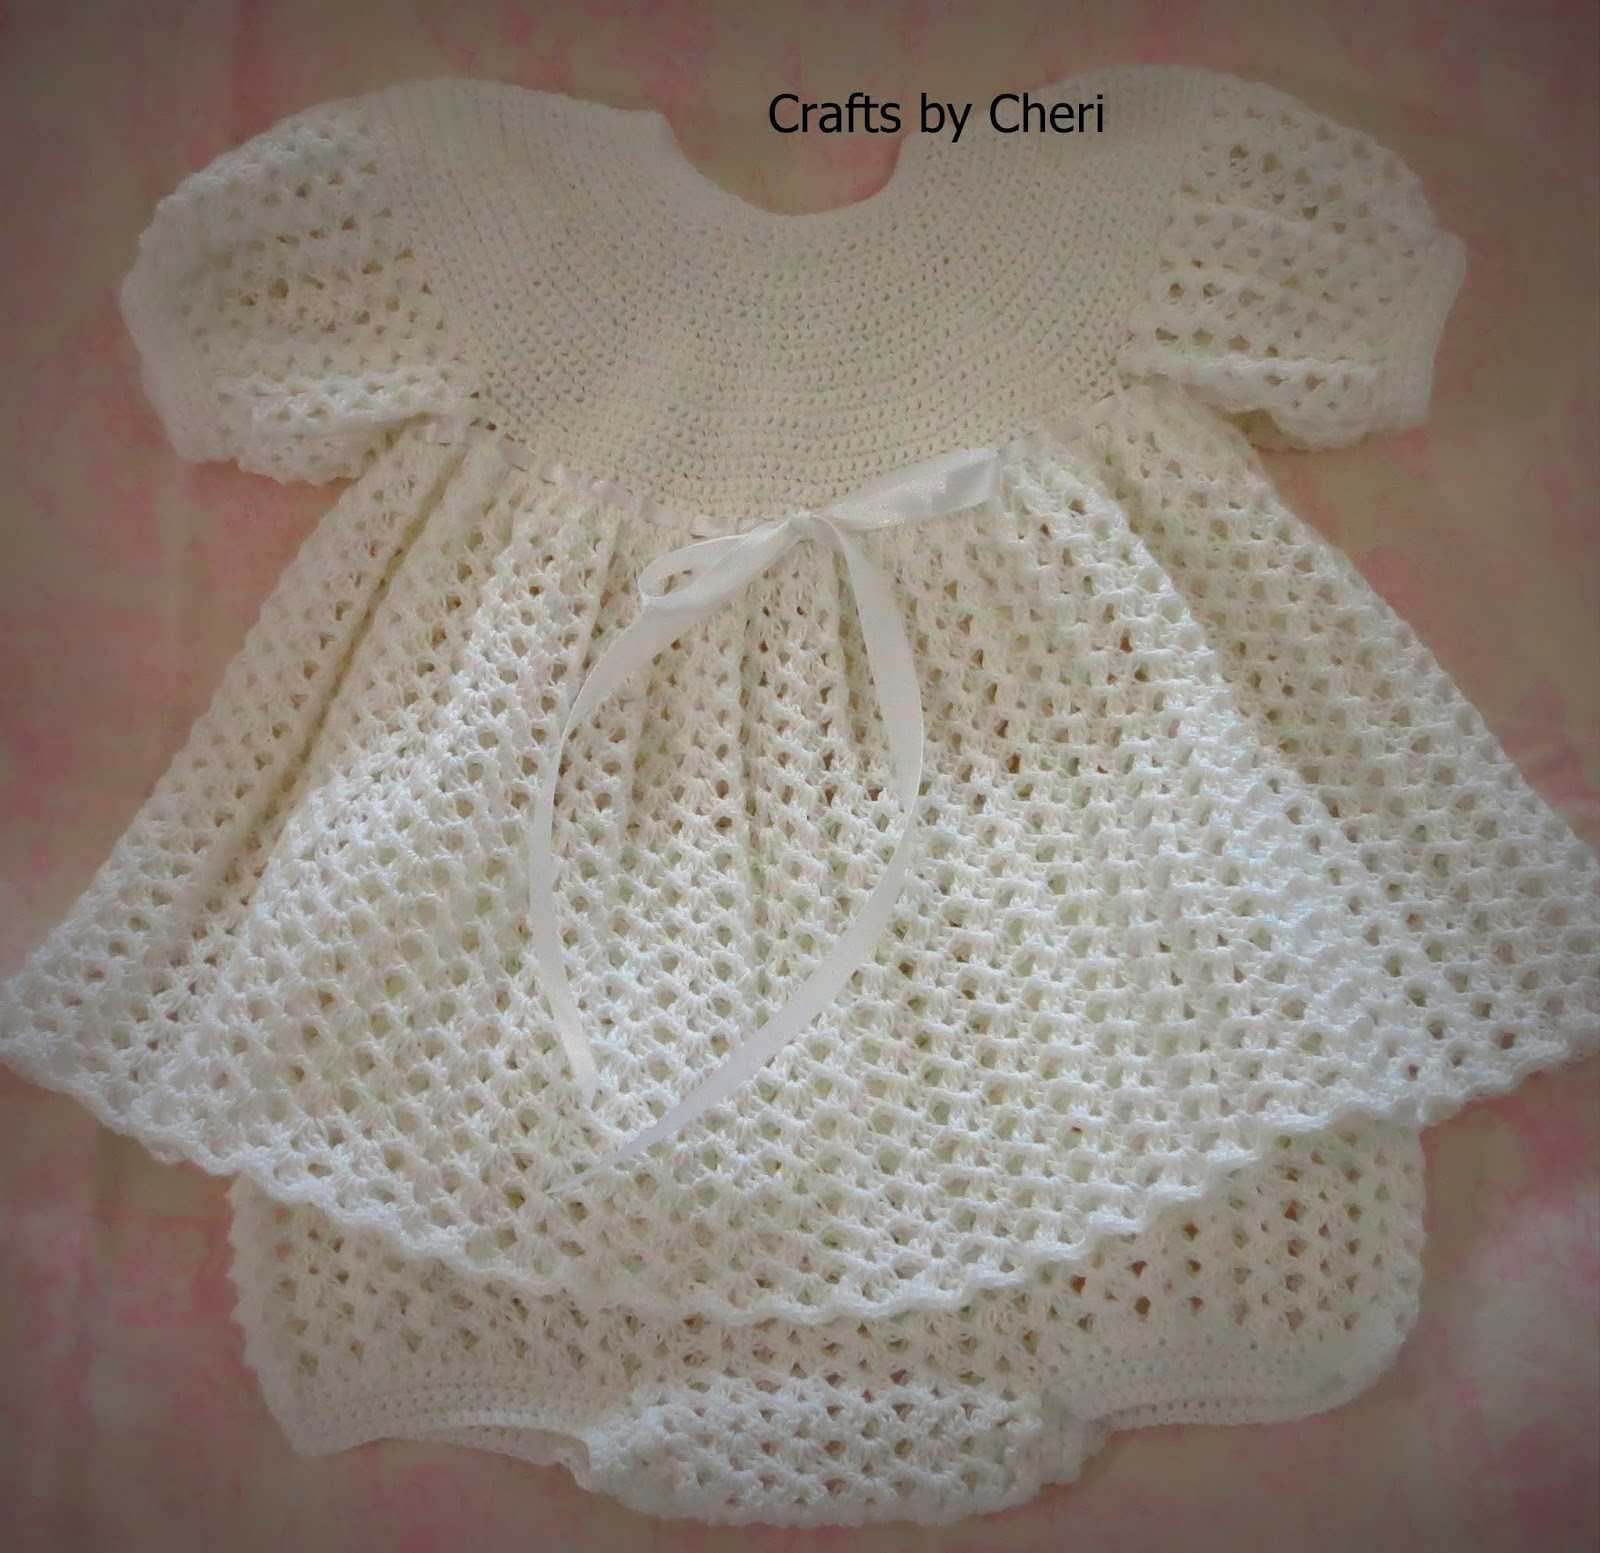 Crochet Baby Clothing Awesome Cheri S Crochet Baby or Reborn Baby Doll Clothing or Of Amazing 44 Ideas Crochet Baby Clothing